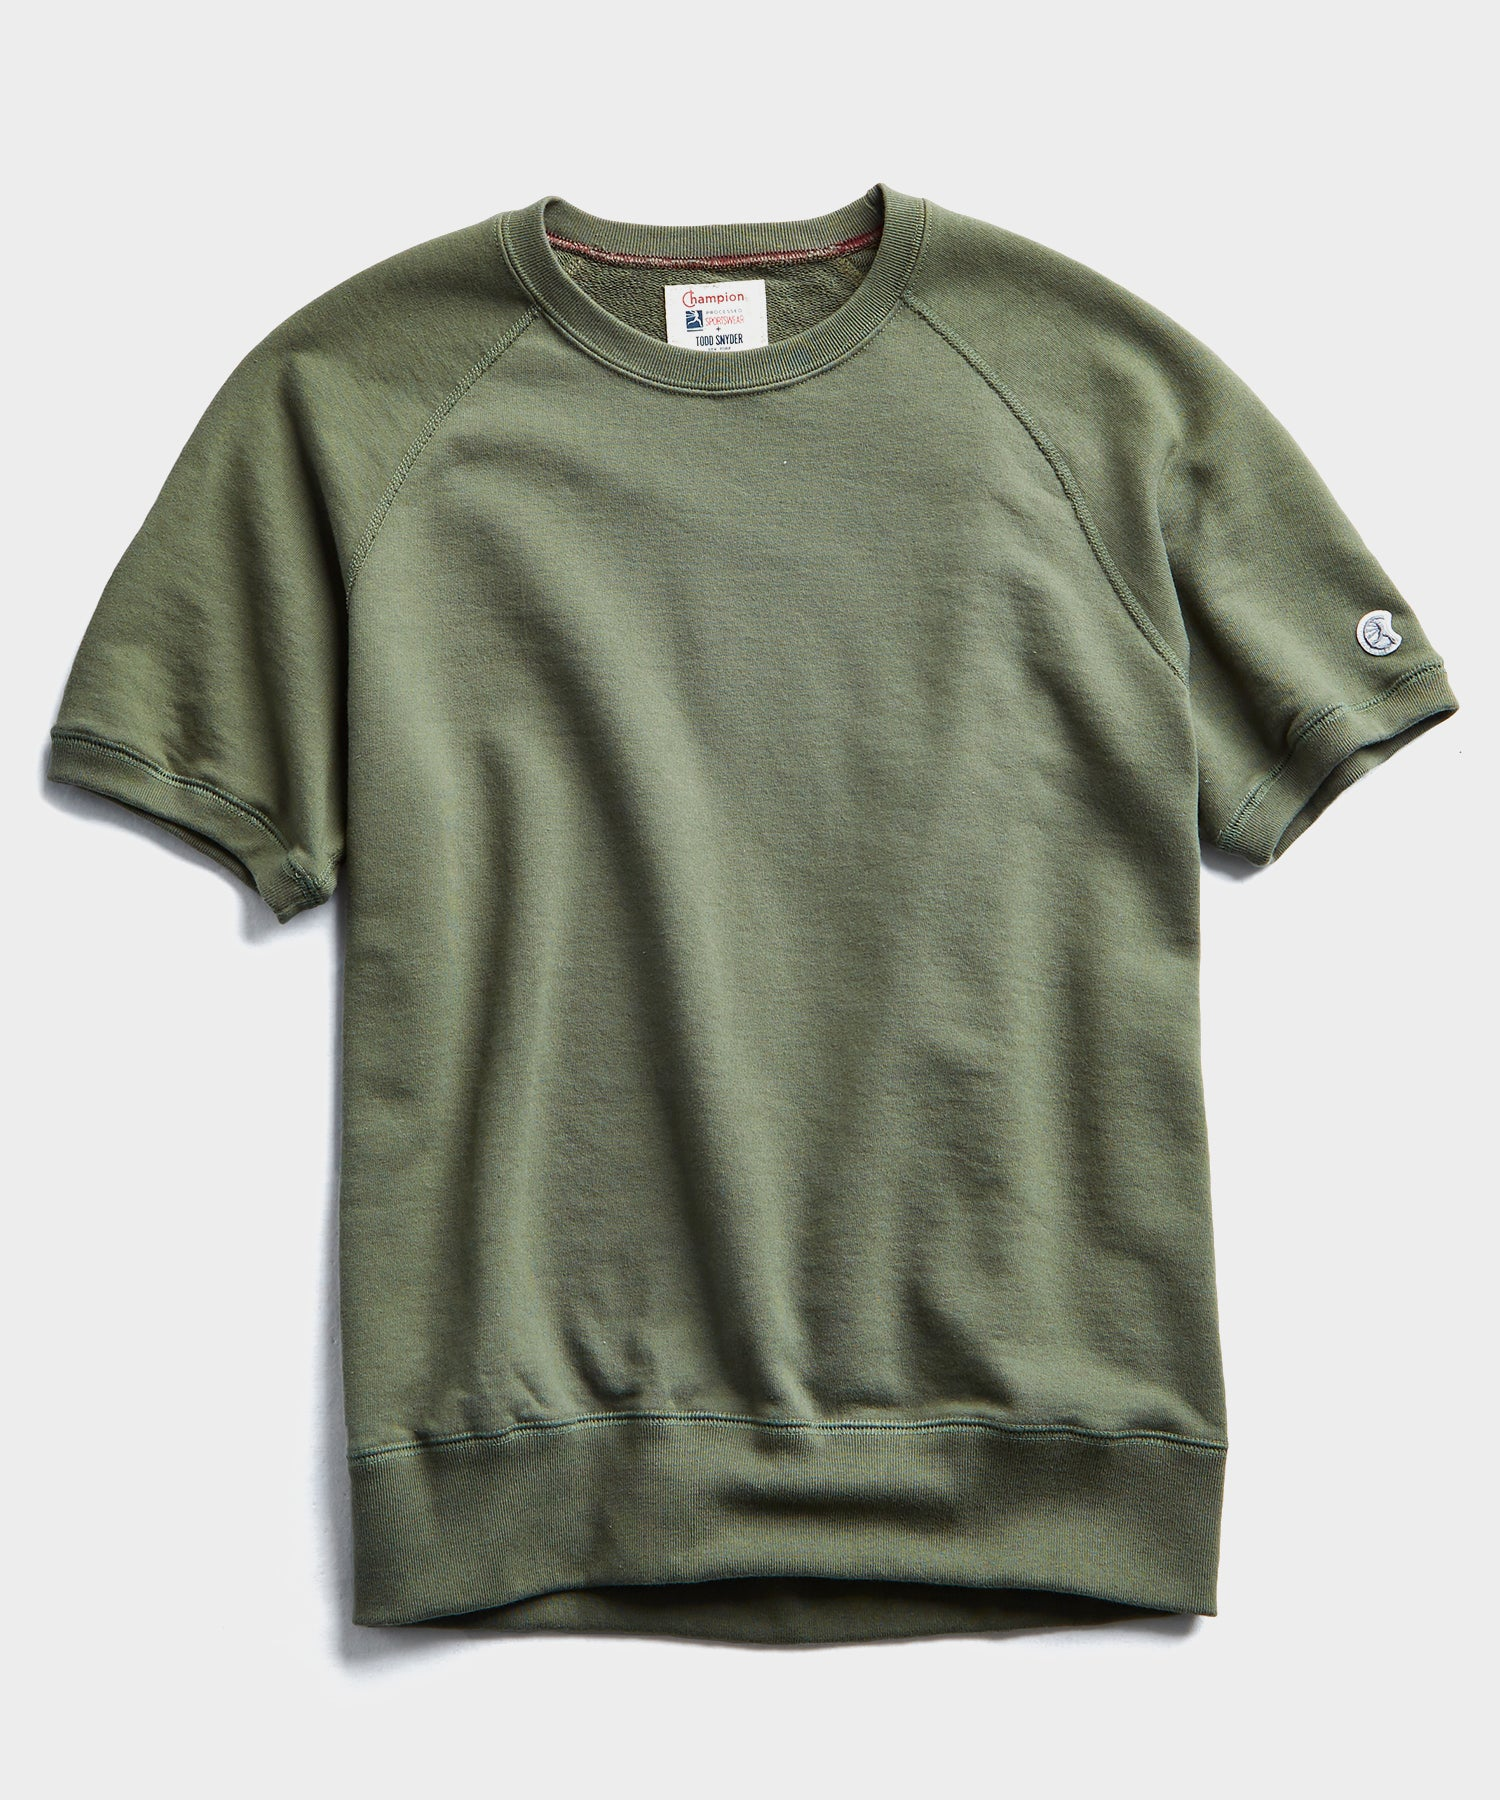 Lightweight Short Sleeve Sweatshirt in Washed Olive